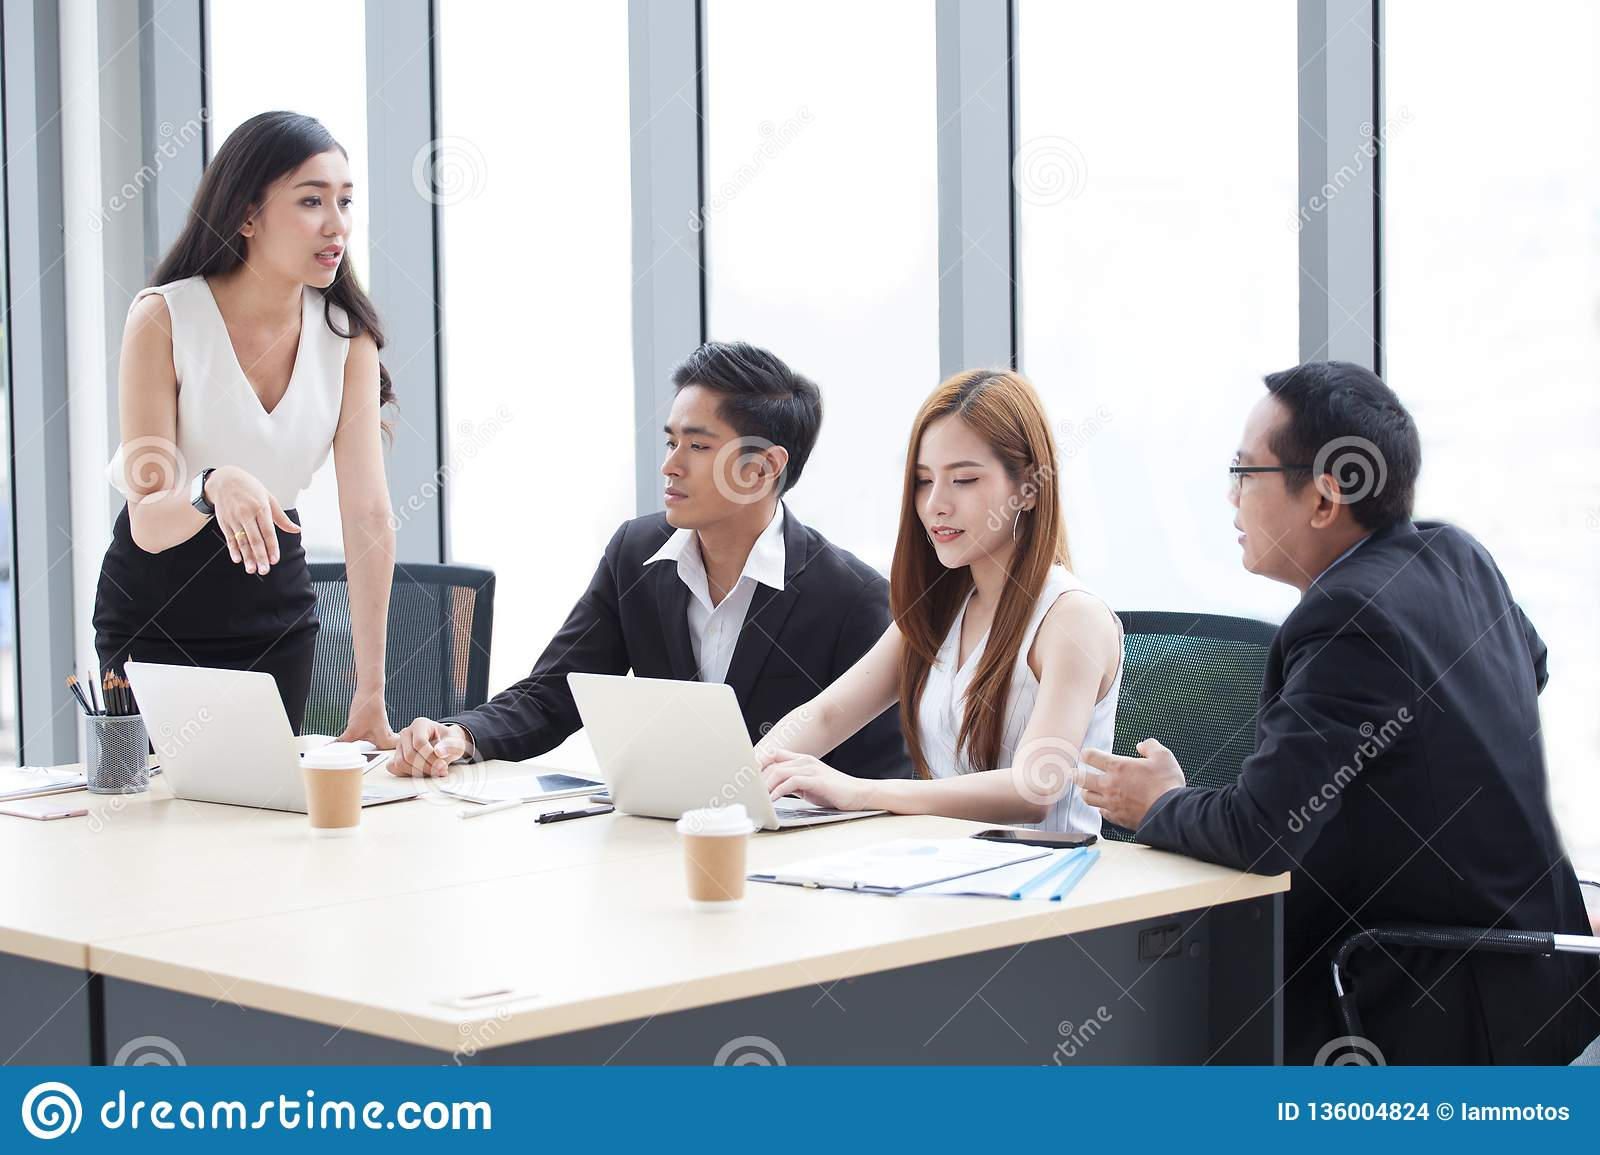 Group Of Young Business People Brainstorming Together In The